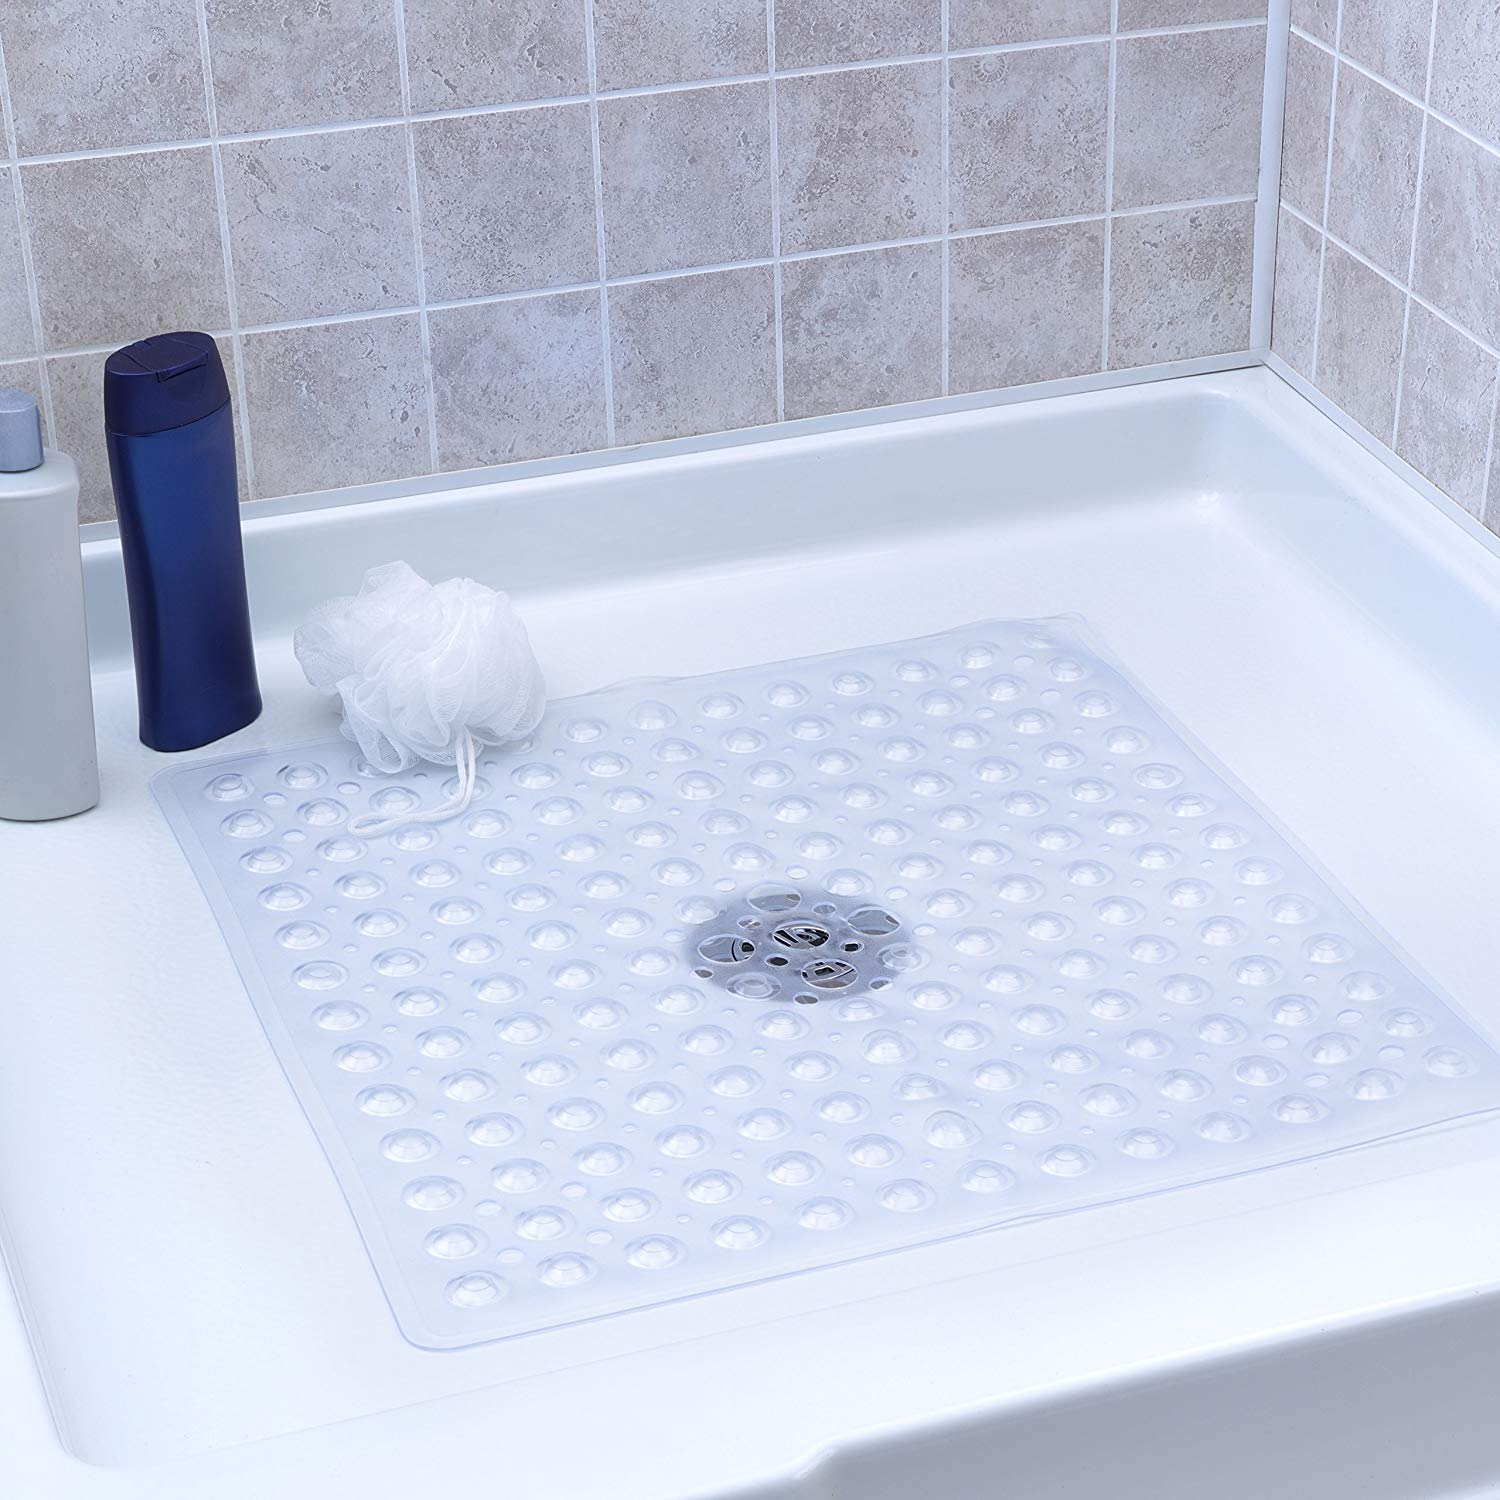 225 & Shower Mat Dubai | Bathroom Rubber Mat Dubai UAE